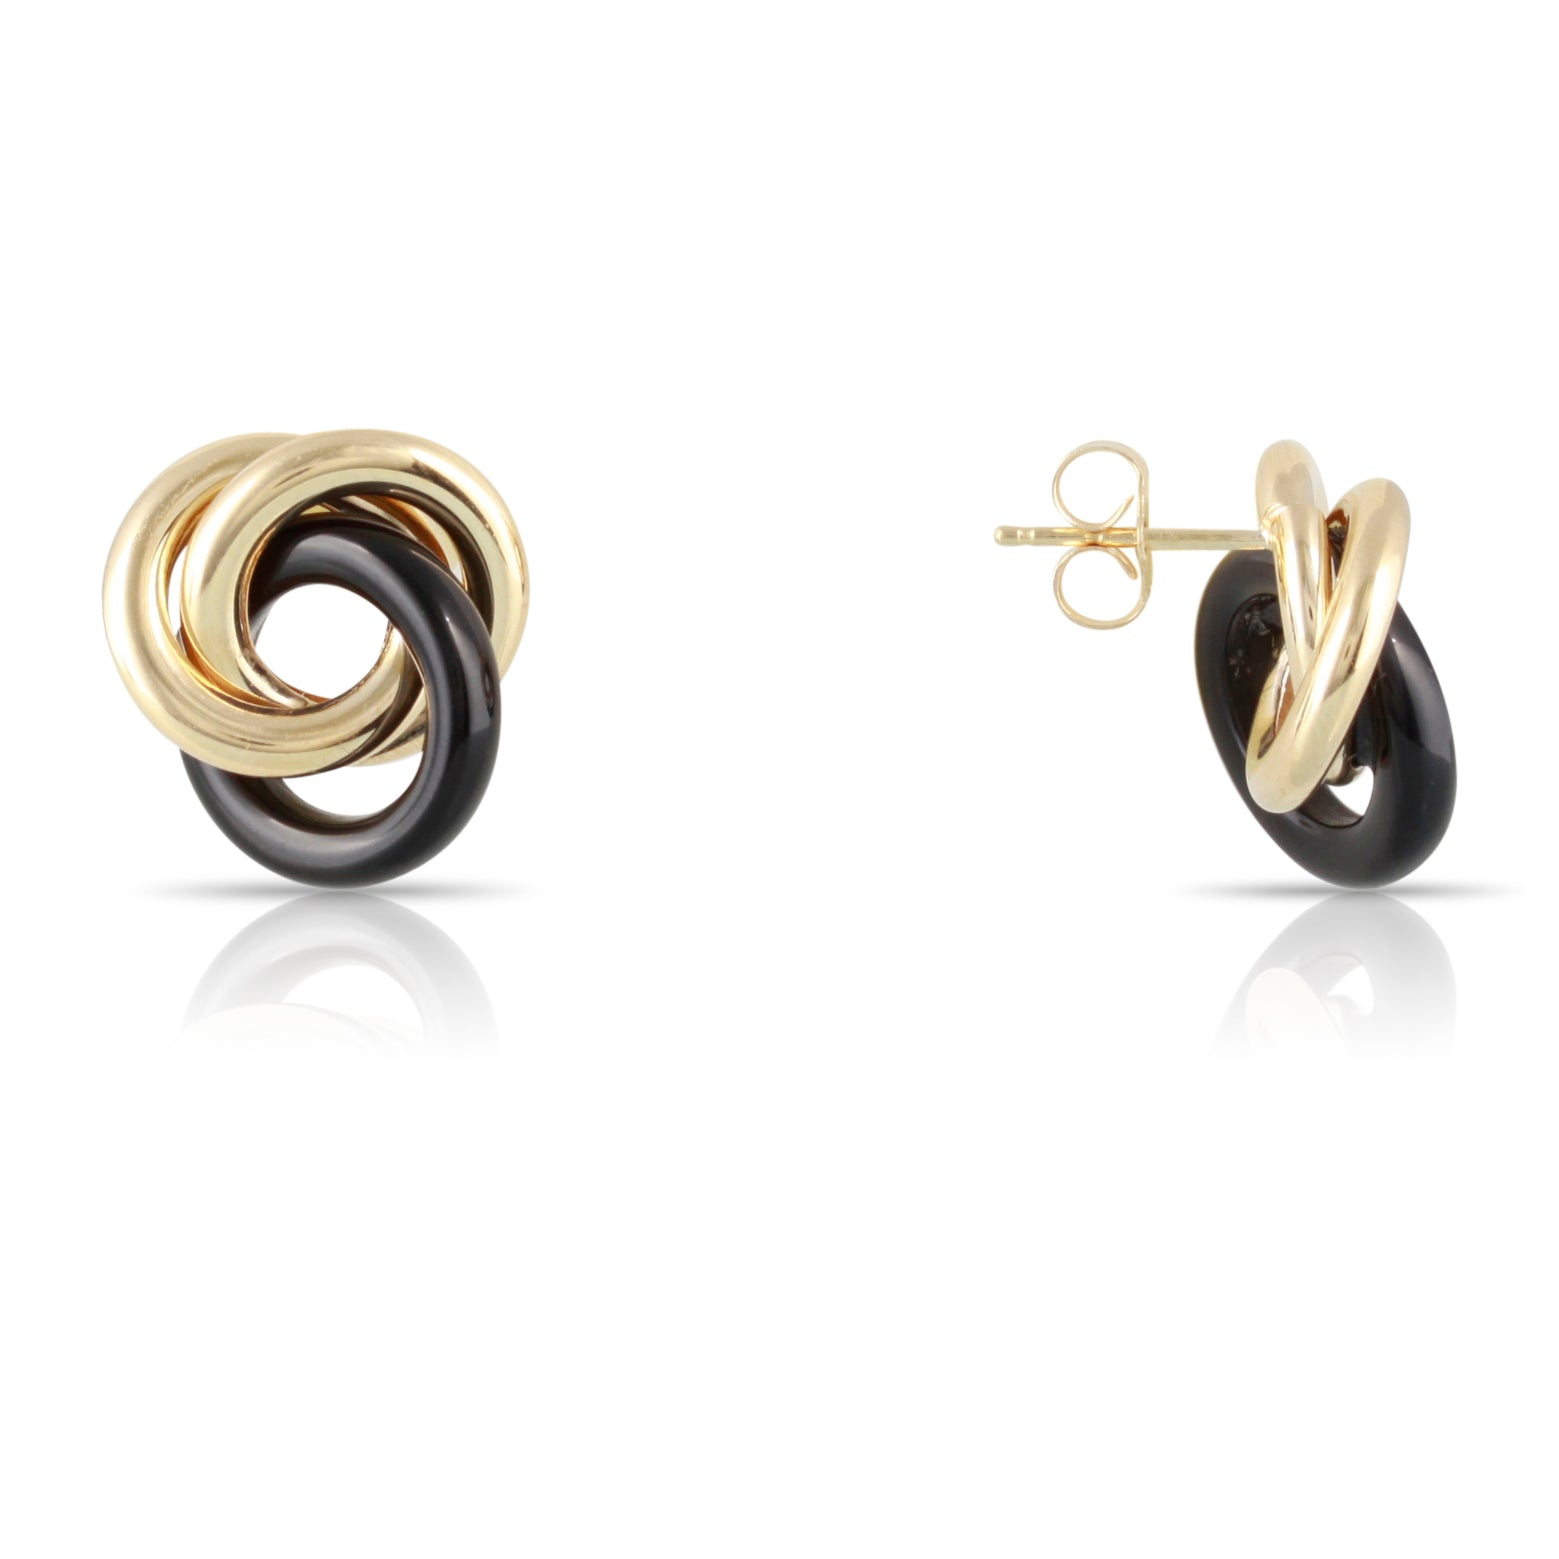 Black Onyx Knot Earrings | The David